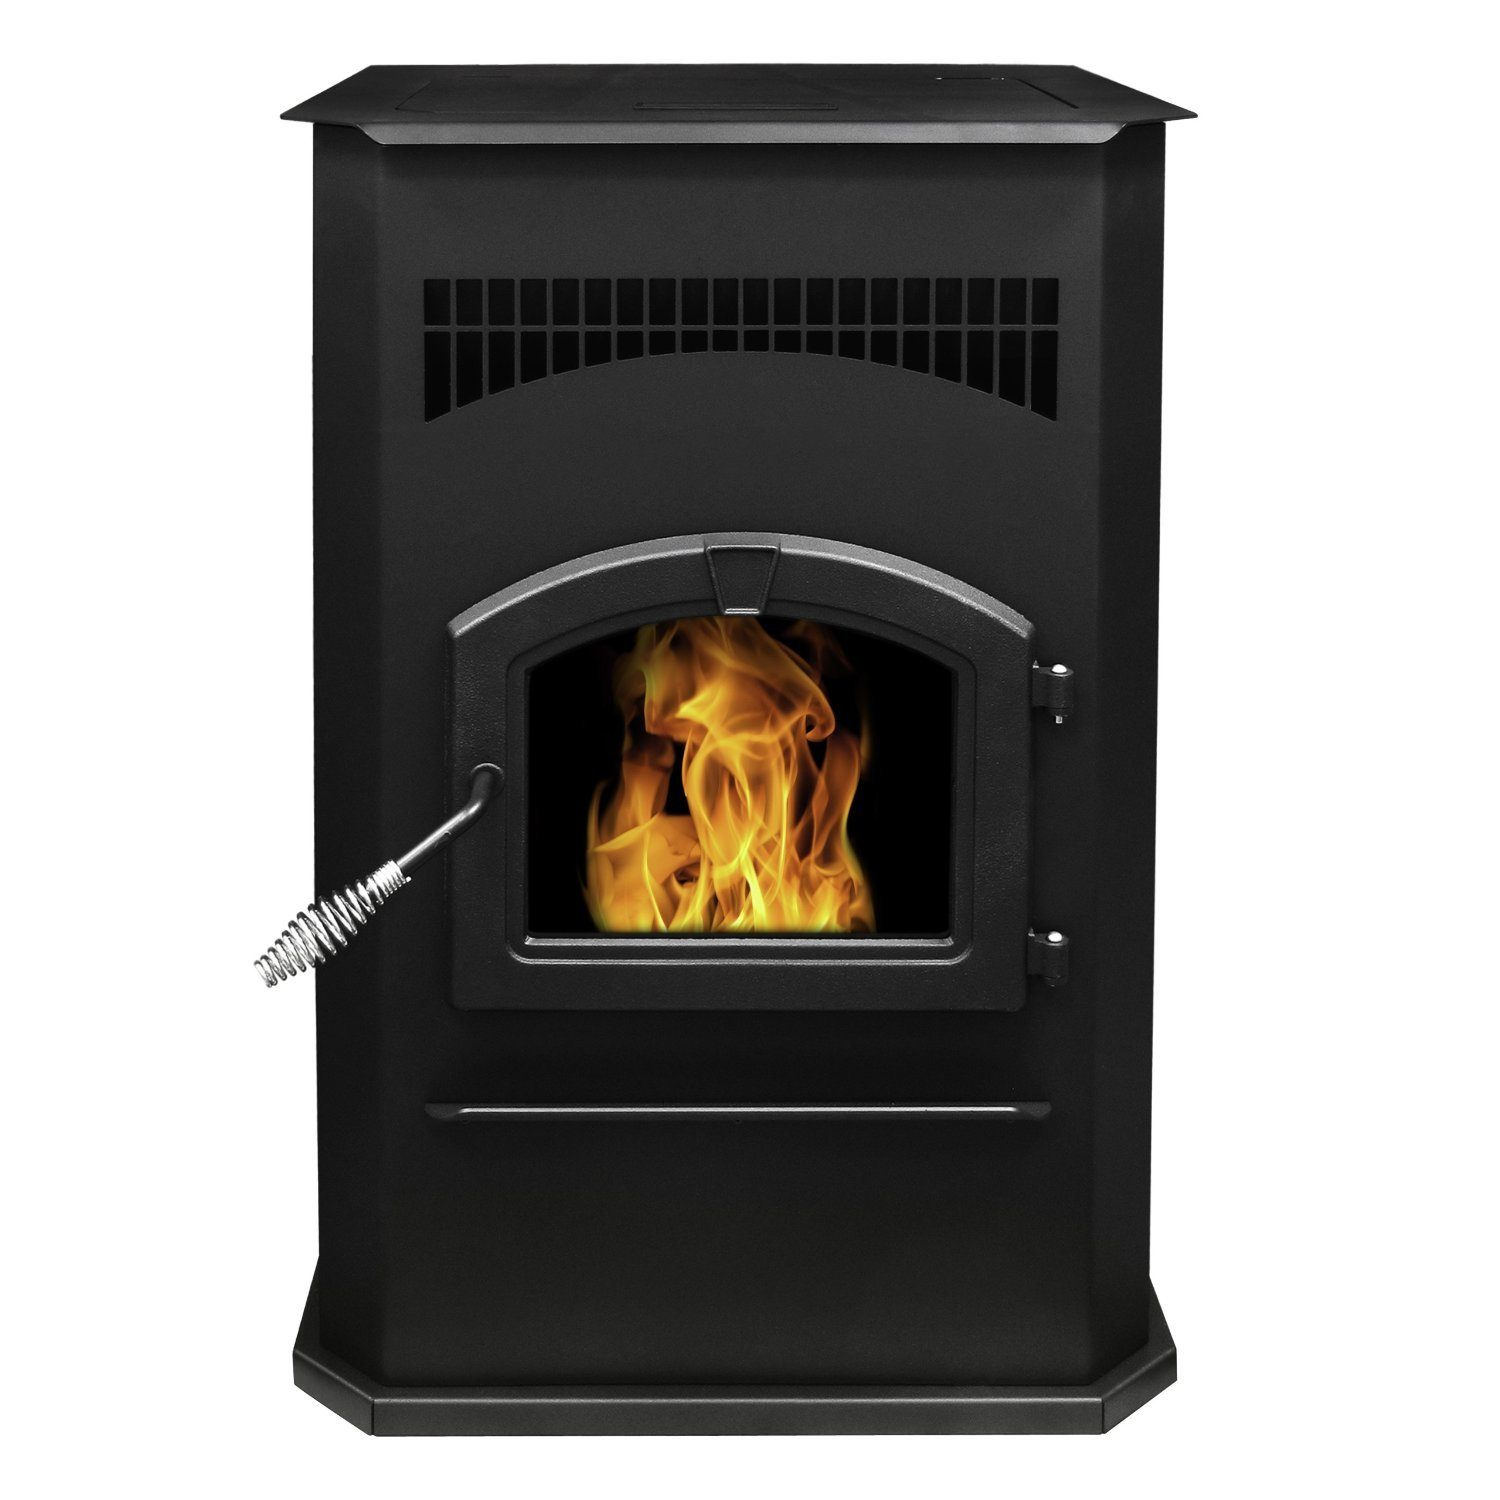 Best Pellet Stove Review 2018 For Your Home An Ultimate Guide